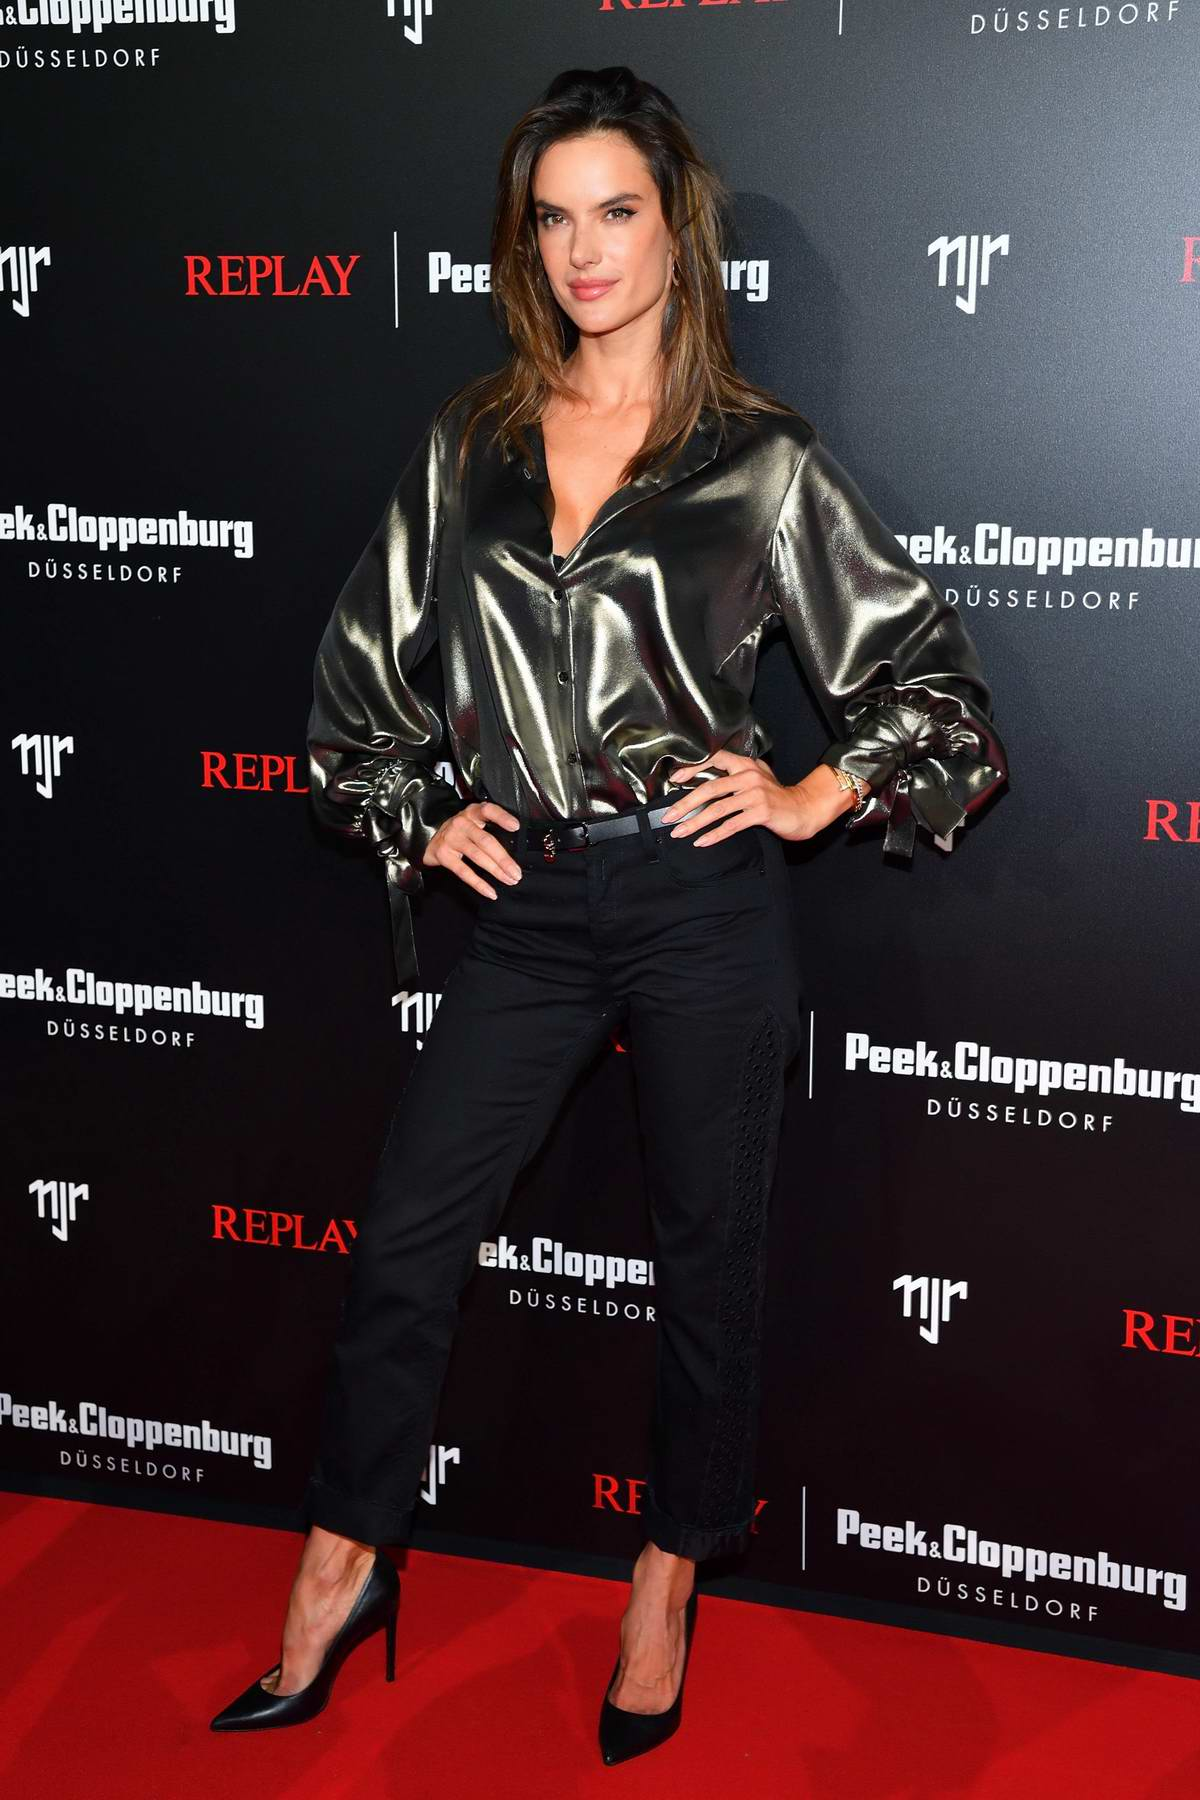 Alessandra Ambrosio attends REPLAY Peek & Cloppenburg in Dusseldorf, Germany